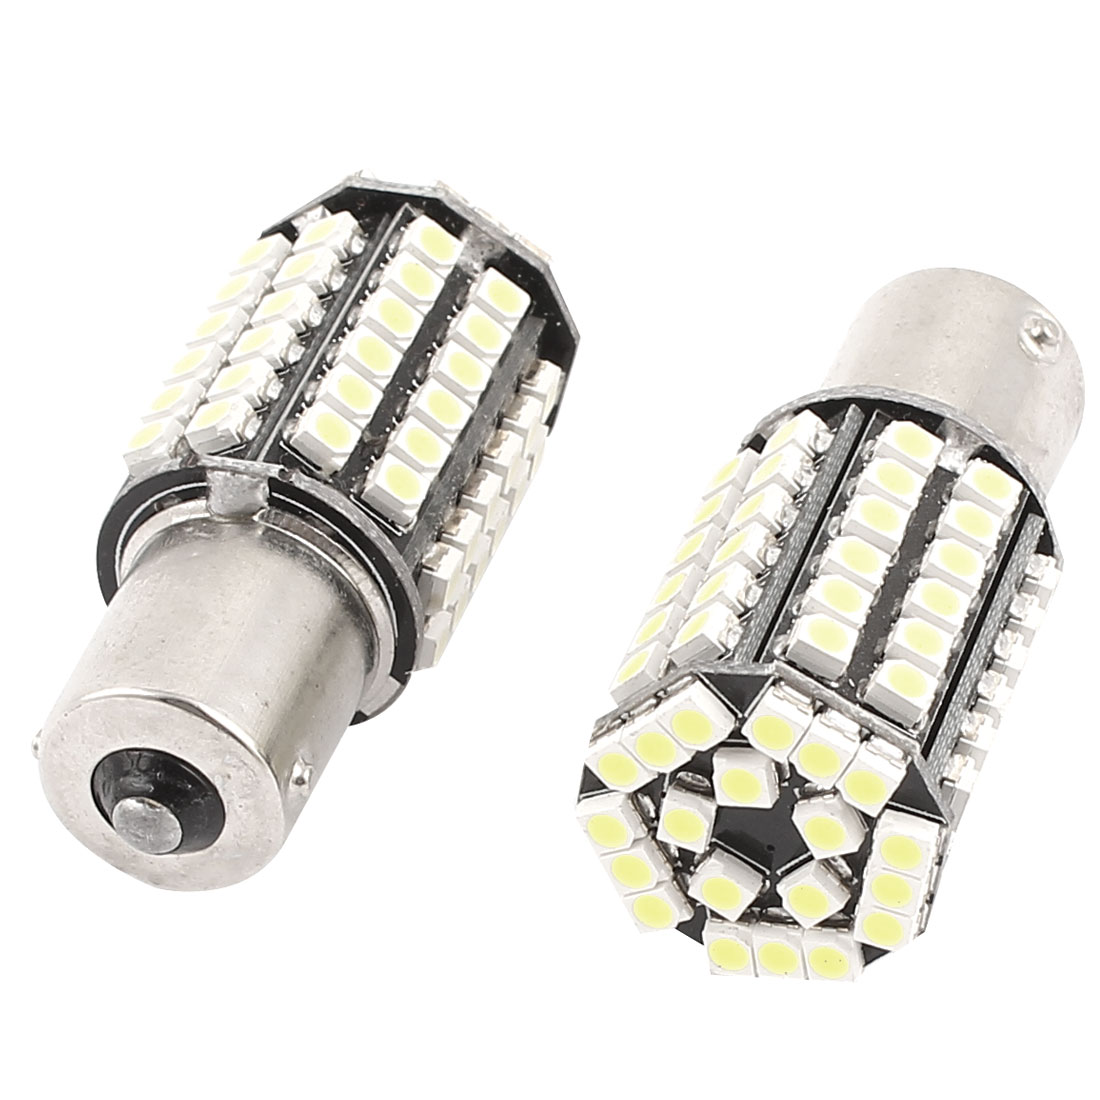 BA15S 1156 3528 SMD 80 LED Car Corner Tail Turn Signal Light White 1073 1259 2 Pcs